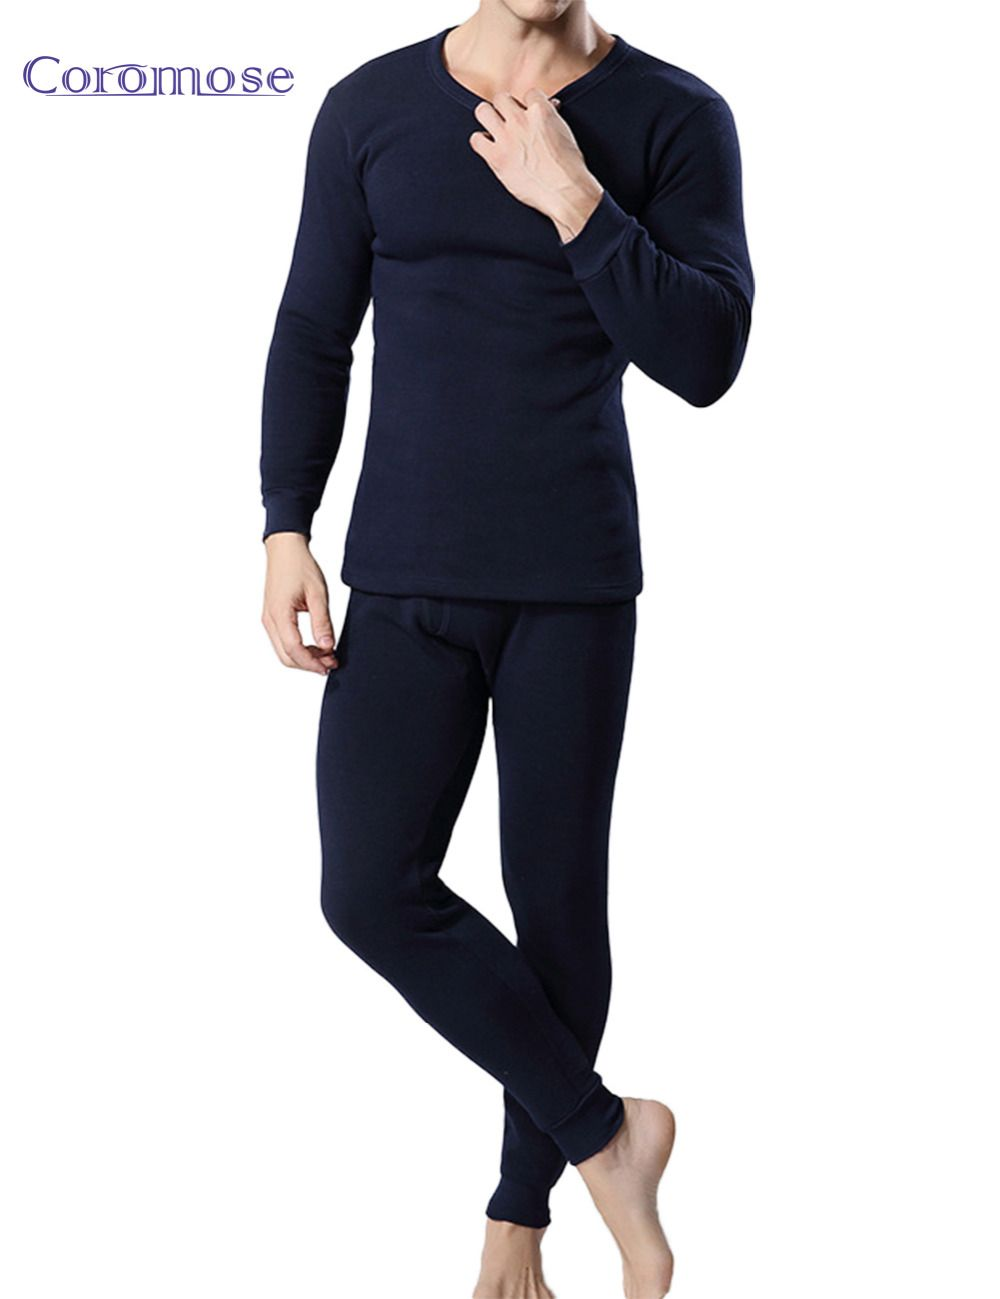 Coromose 2017 Winter Mens Warm Thermal Underwear Male Long Johns Sexy Black Thermal Underwear Sets Thick Plus Velet Long Johns